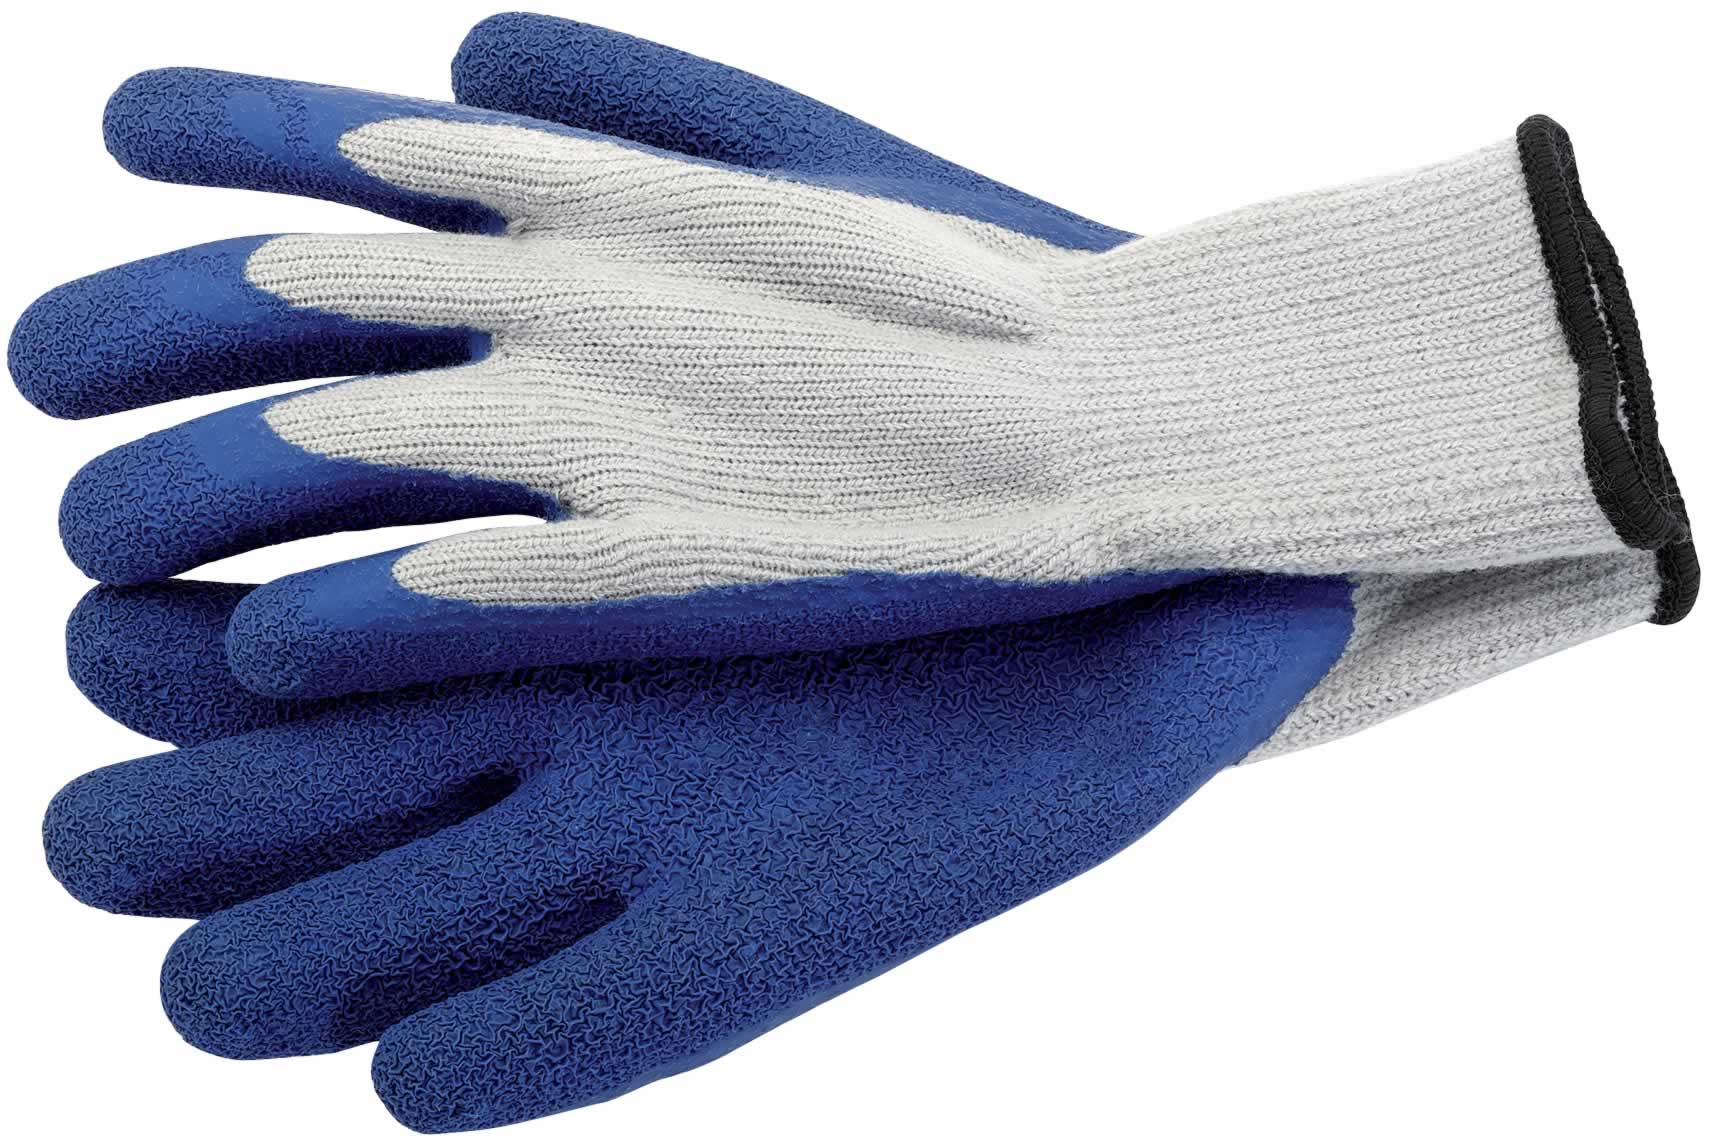 HEAVY DUTY LATEX THERMAL GLOVES - LARGE